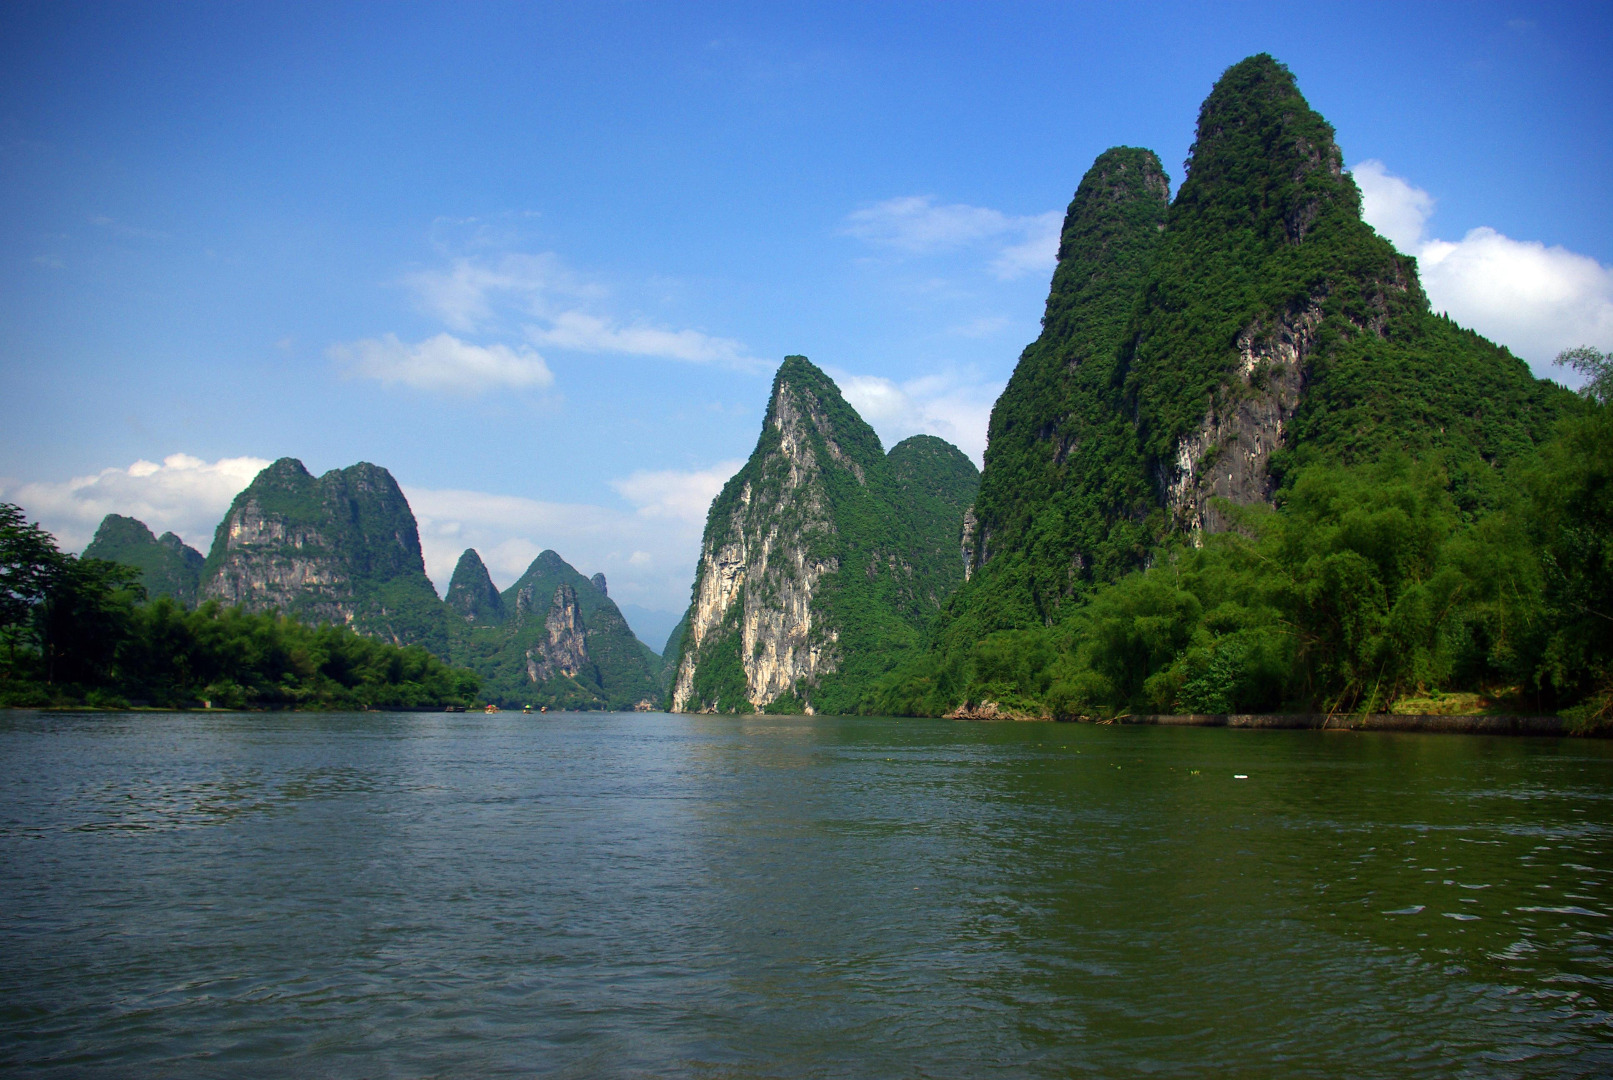 Picture from stuartmattersphotography.  The Li River (Chinese: 漓江; pinyin: Lí Jiāng) or Lijiang is a river in Guangxi Zhuang Autonomous Region, China. It flows 83 kilometres (52 mi) from Guilin to Yangshuo, where the karst mountains and river sights highlight the famous Li River cruise.